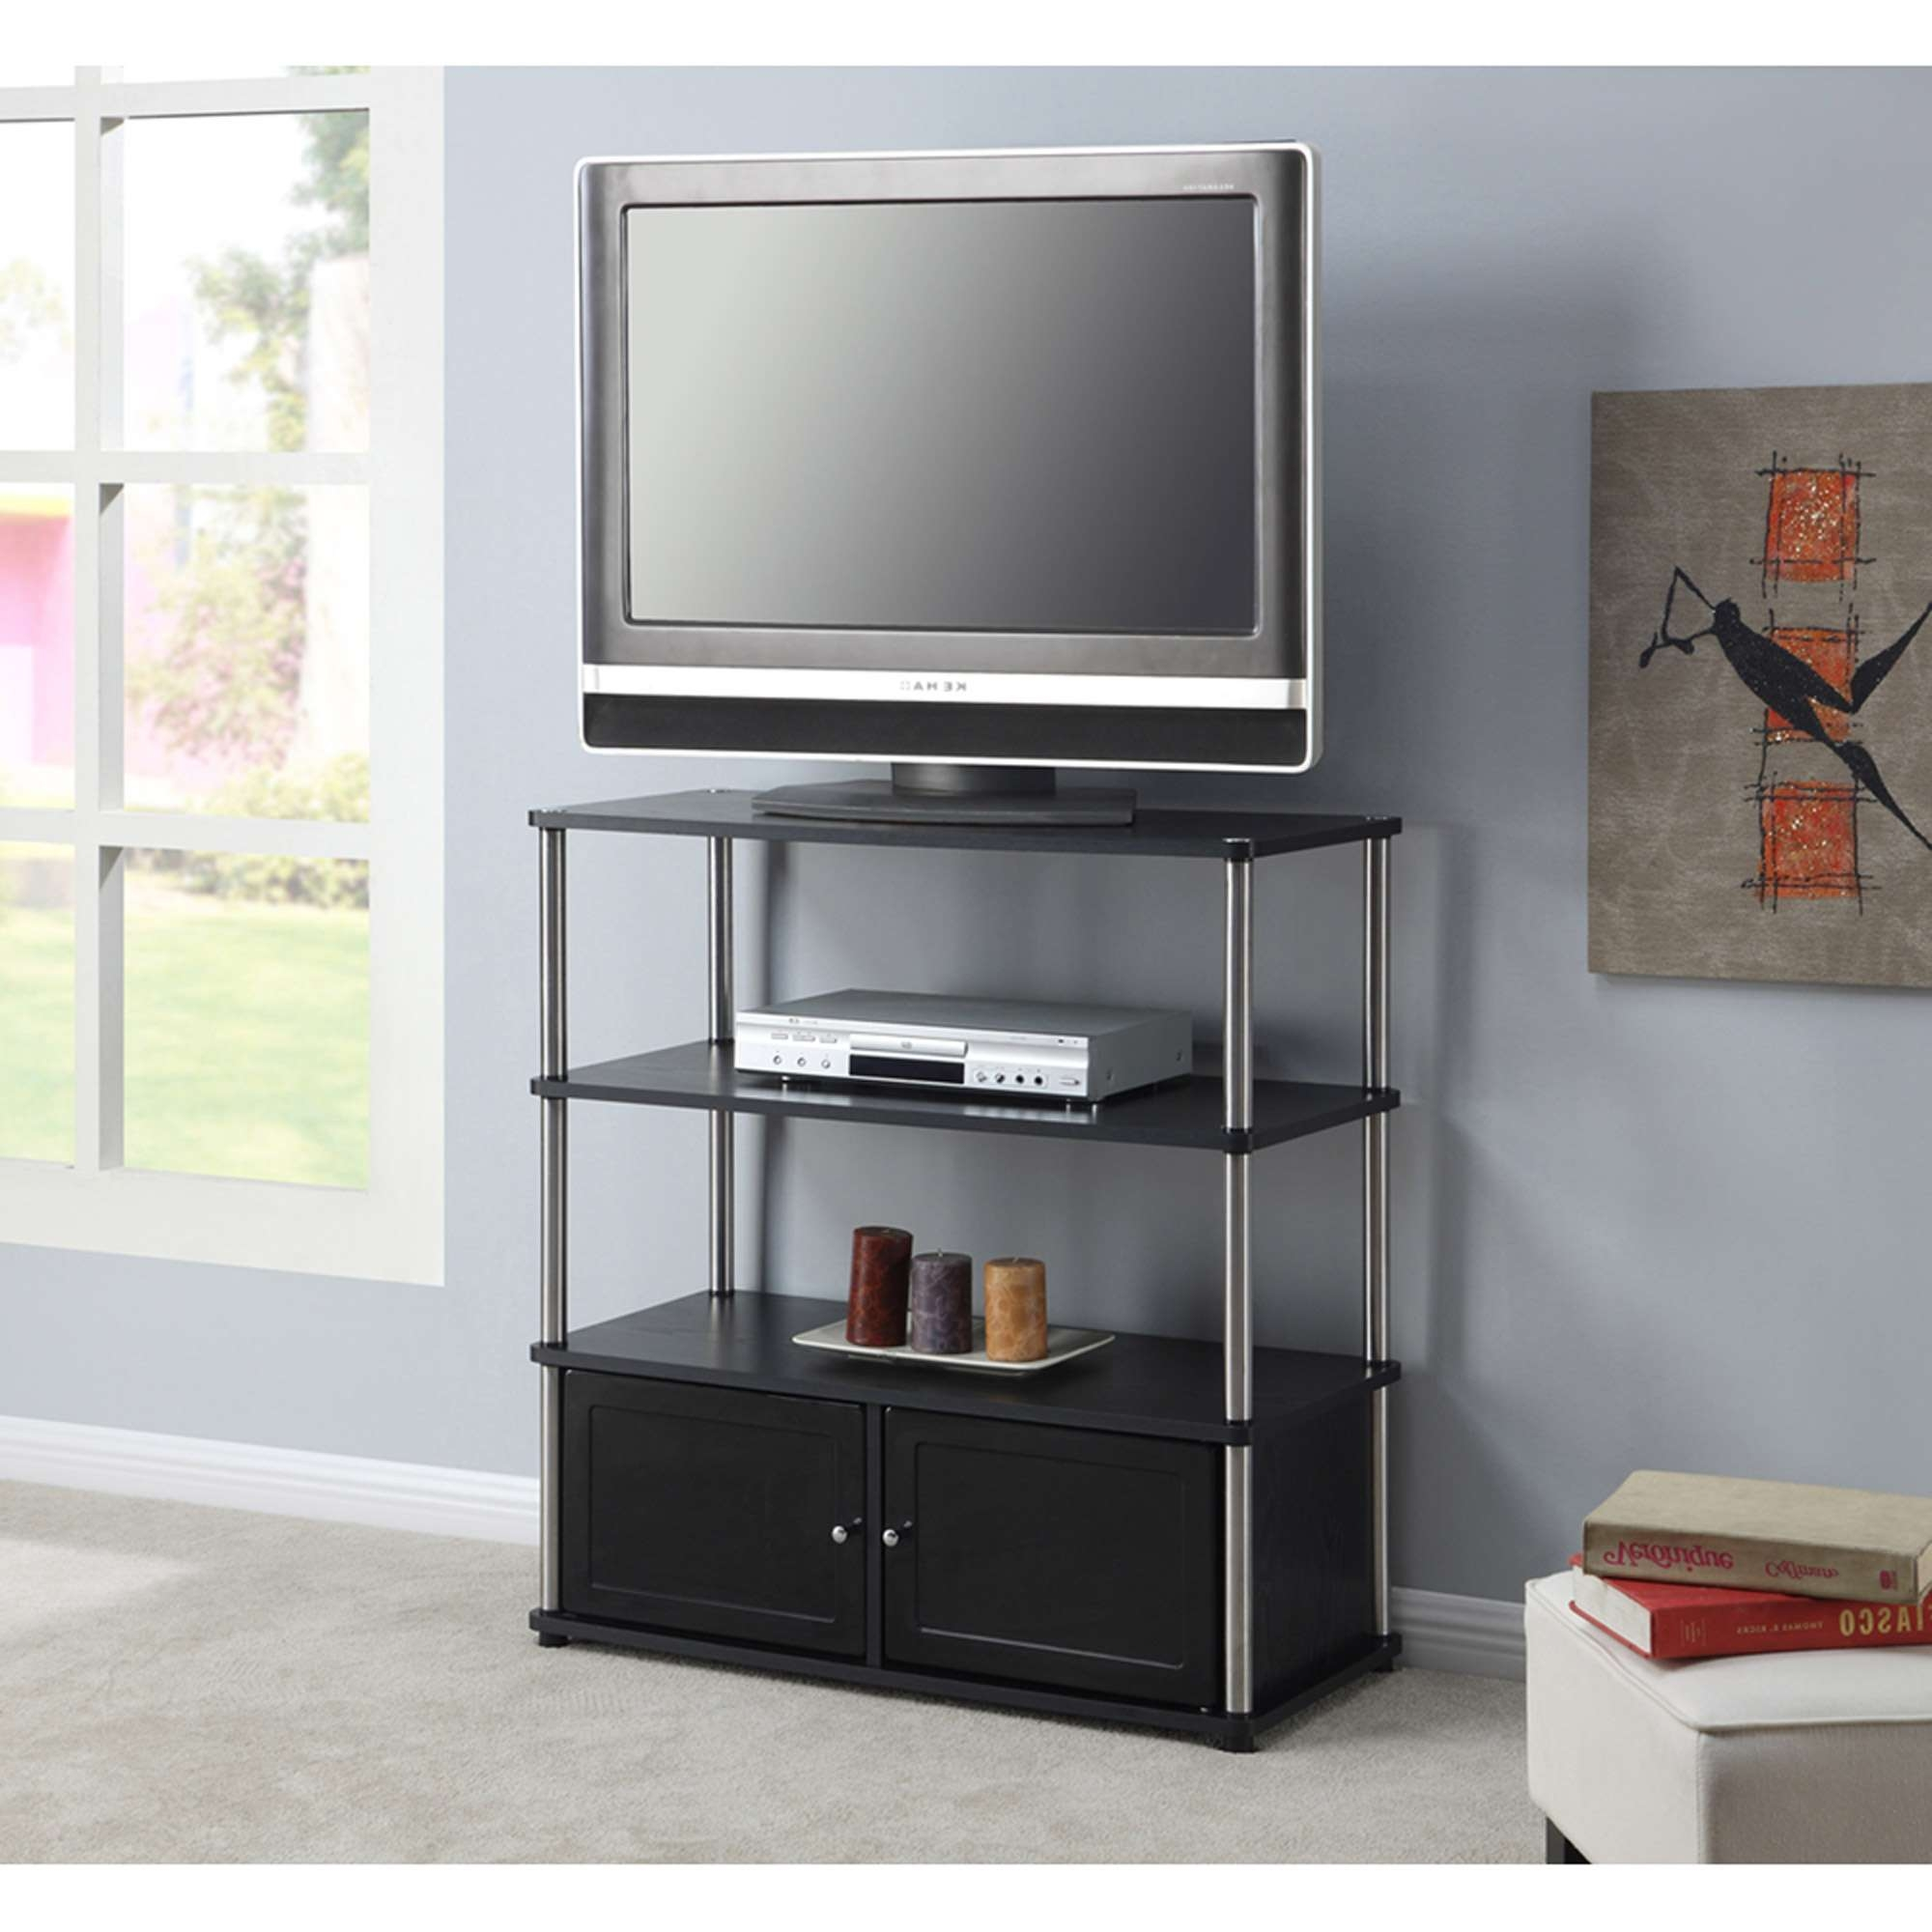 Tall Tv Stand In Tall Skinny Tv Stands (View 7 of 15)